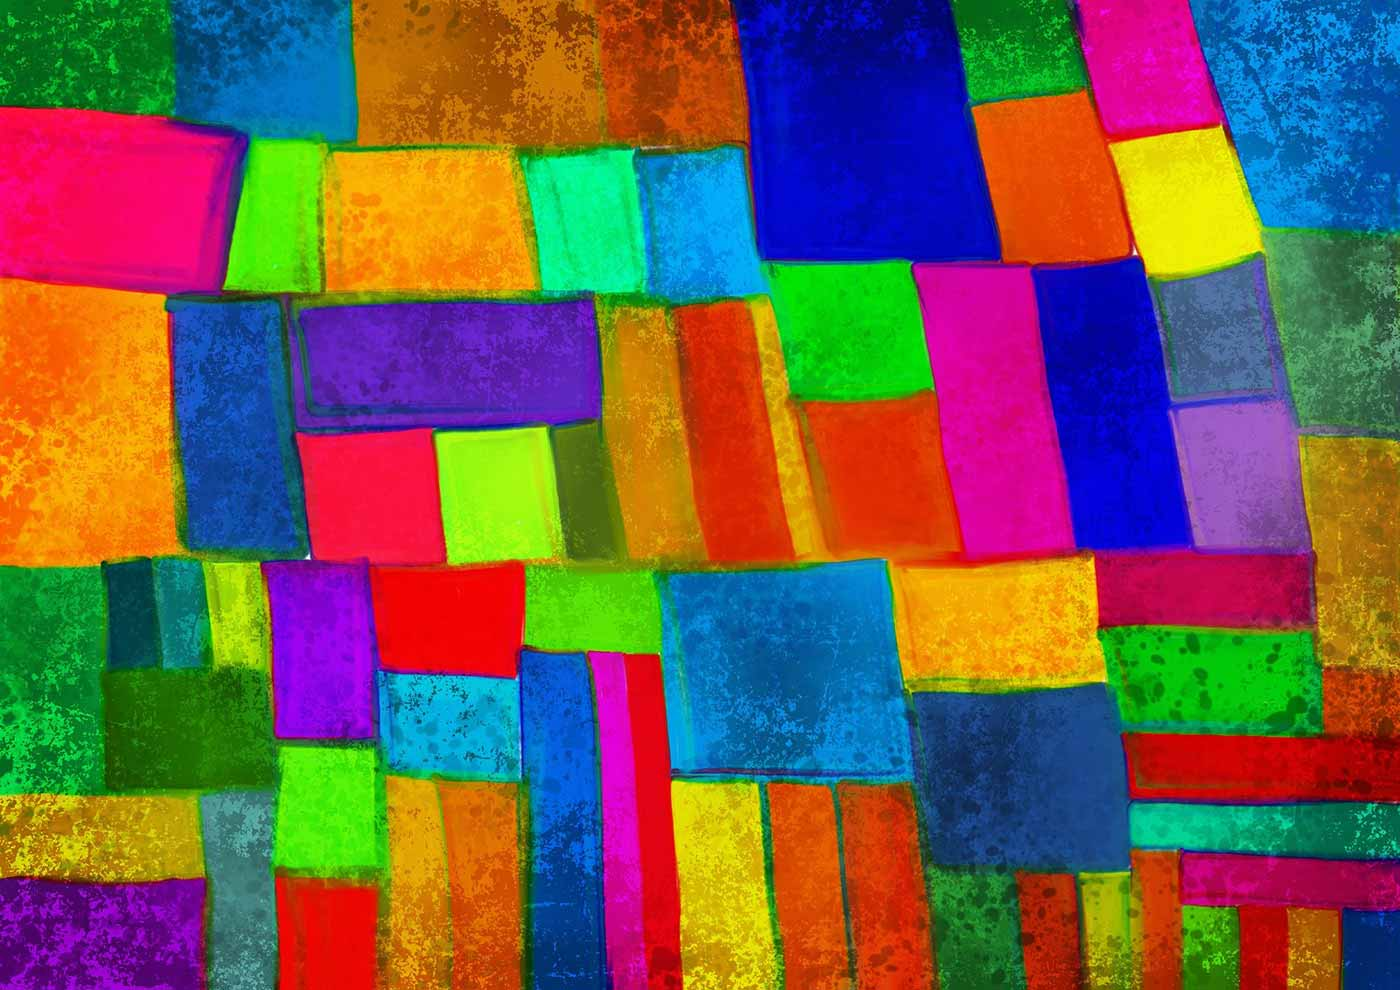 Abstract shapes on a canvas